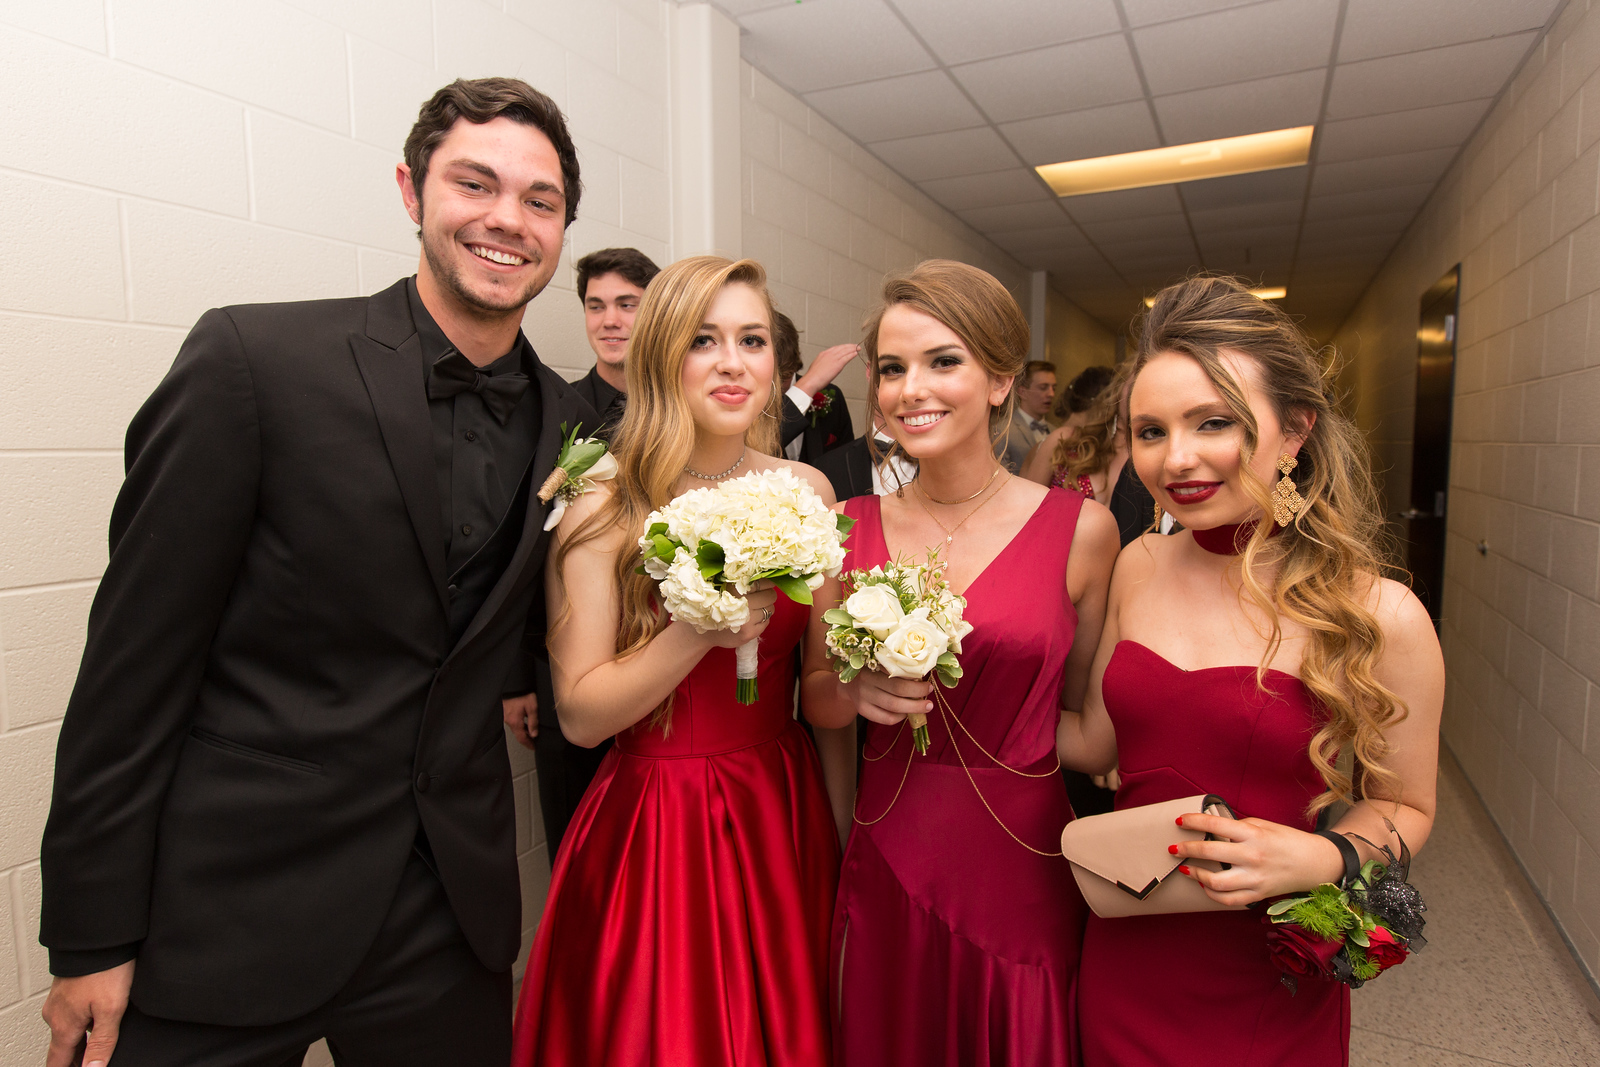 Noah Hill, Ellie Posey, Shelby Cooper, and Amanda Paulsen wait in line for Promenade.